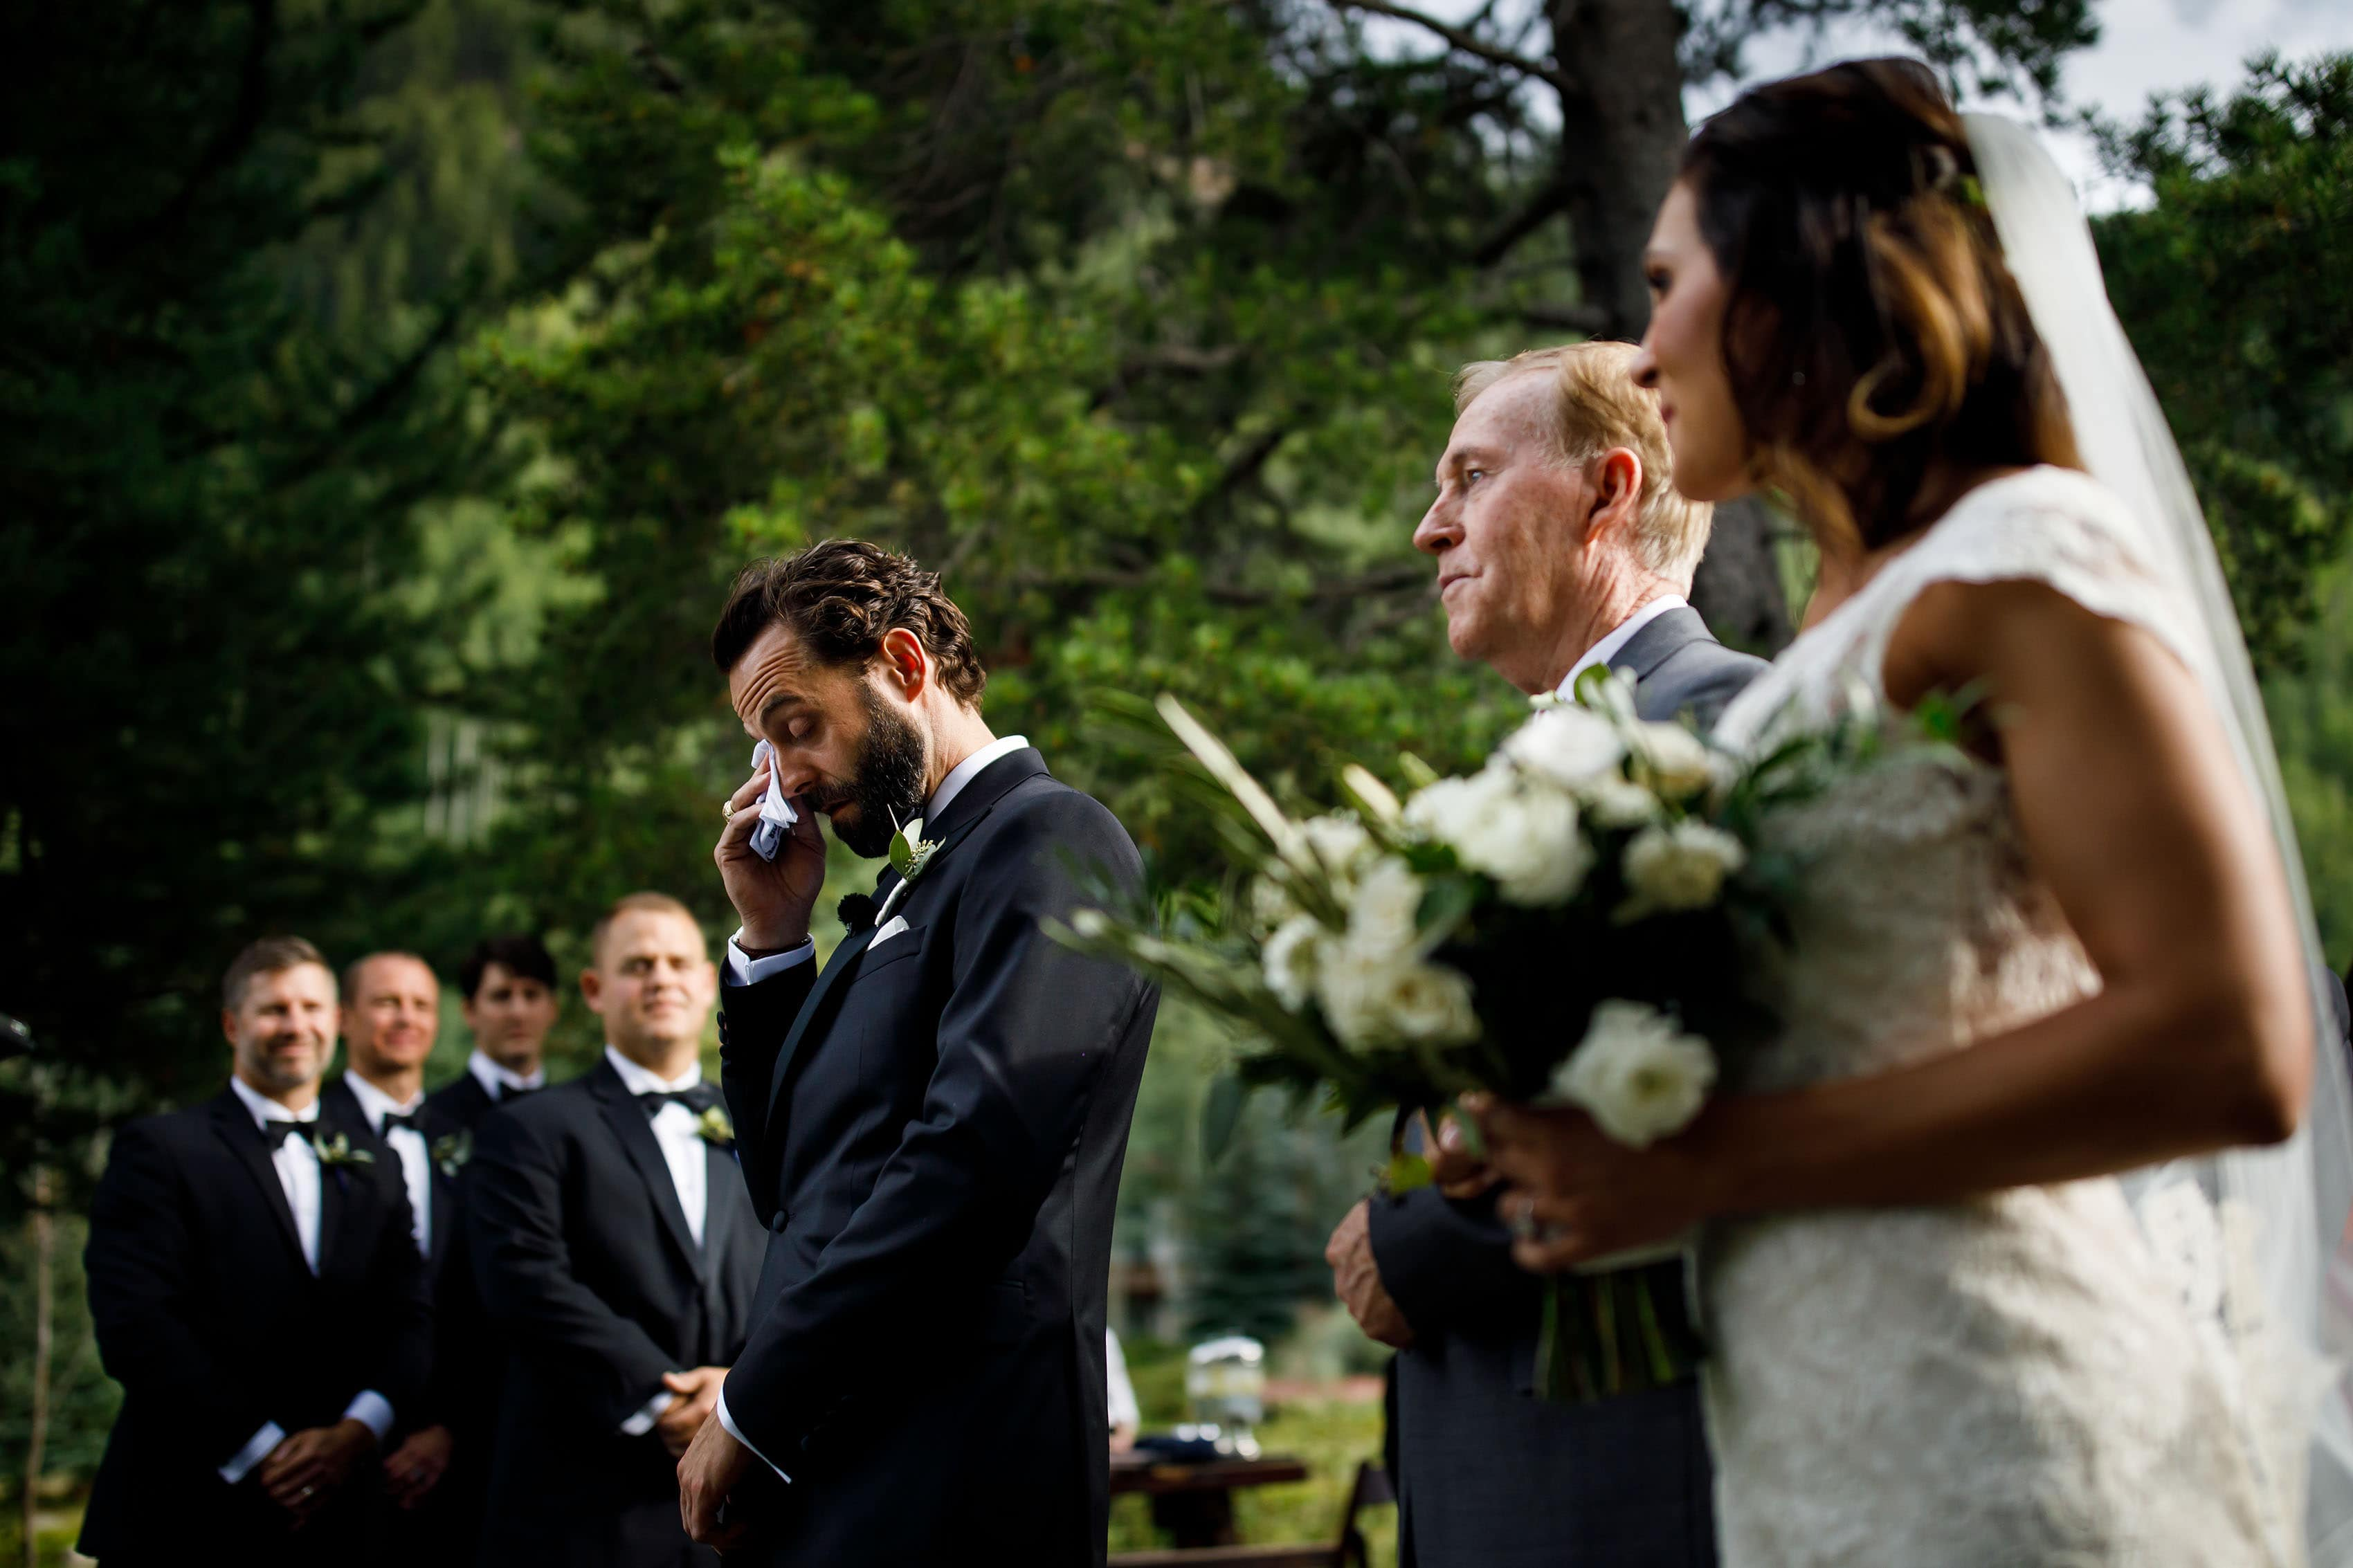 The groom wipes away a tear during the ceremony at Vail Golf Club